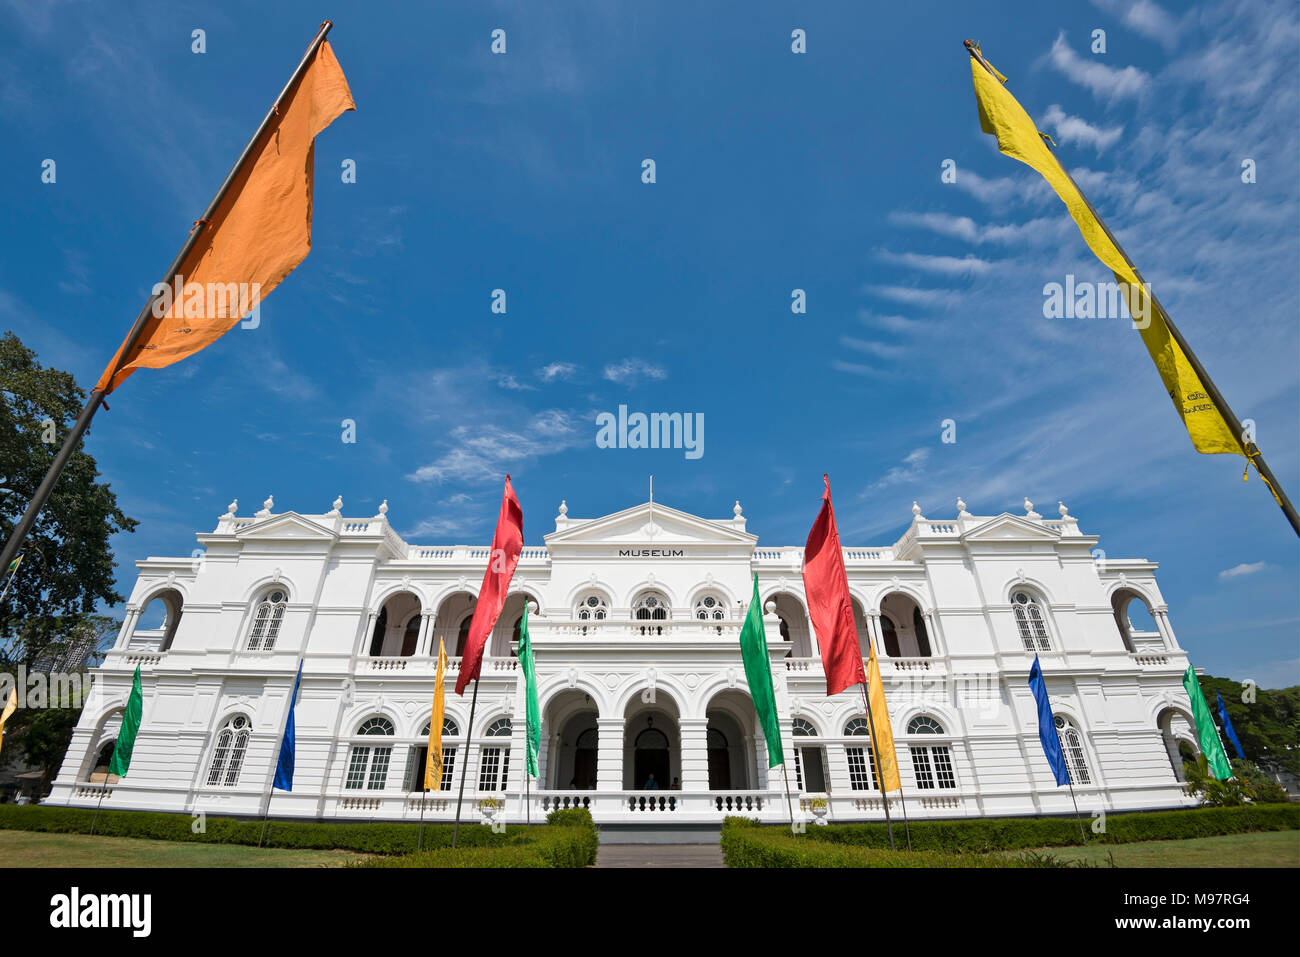 Horizontal view of the National Museum of Colombo, aka the Sri Lanka National Museum, in Colombo, Sri Lanka. - Stock Image